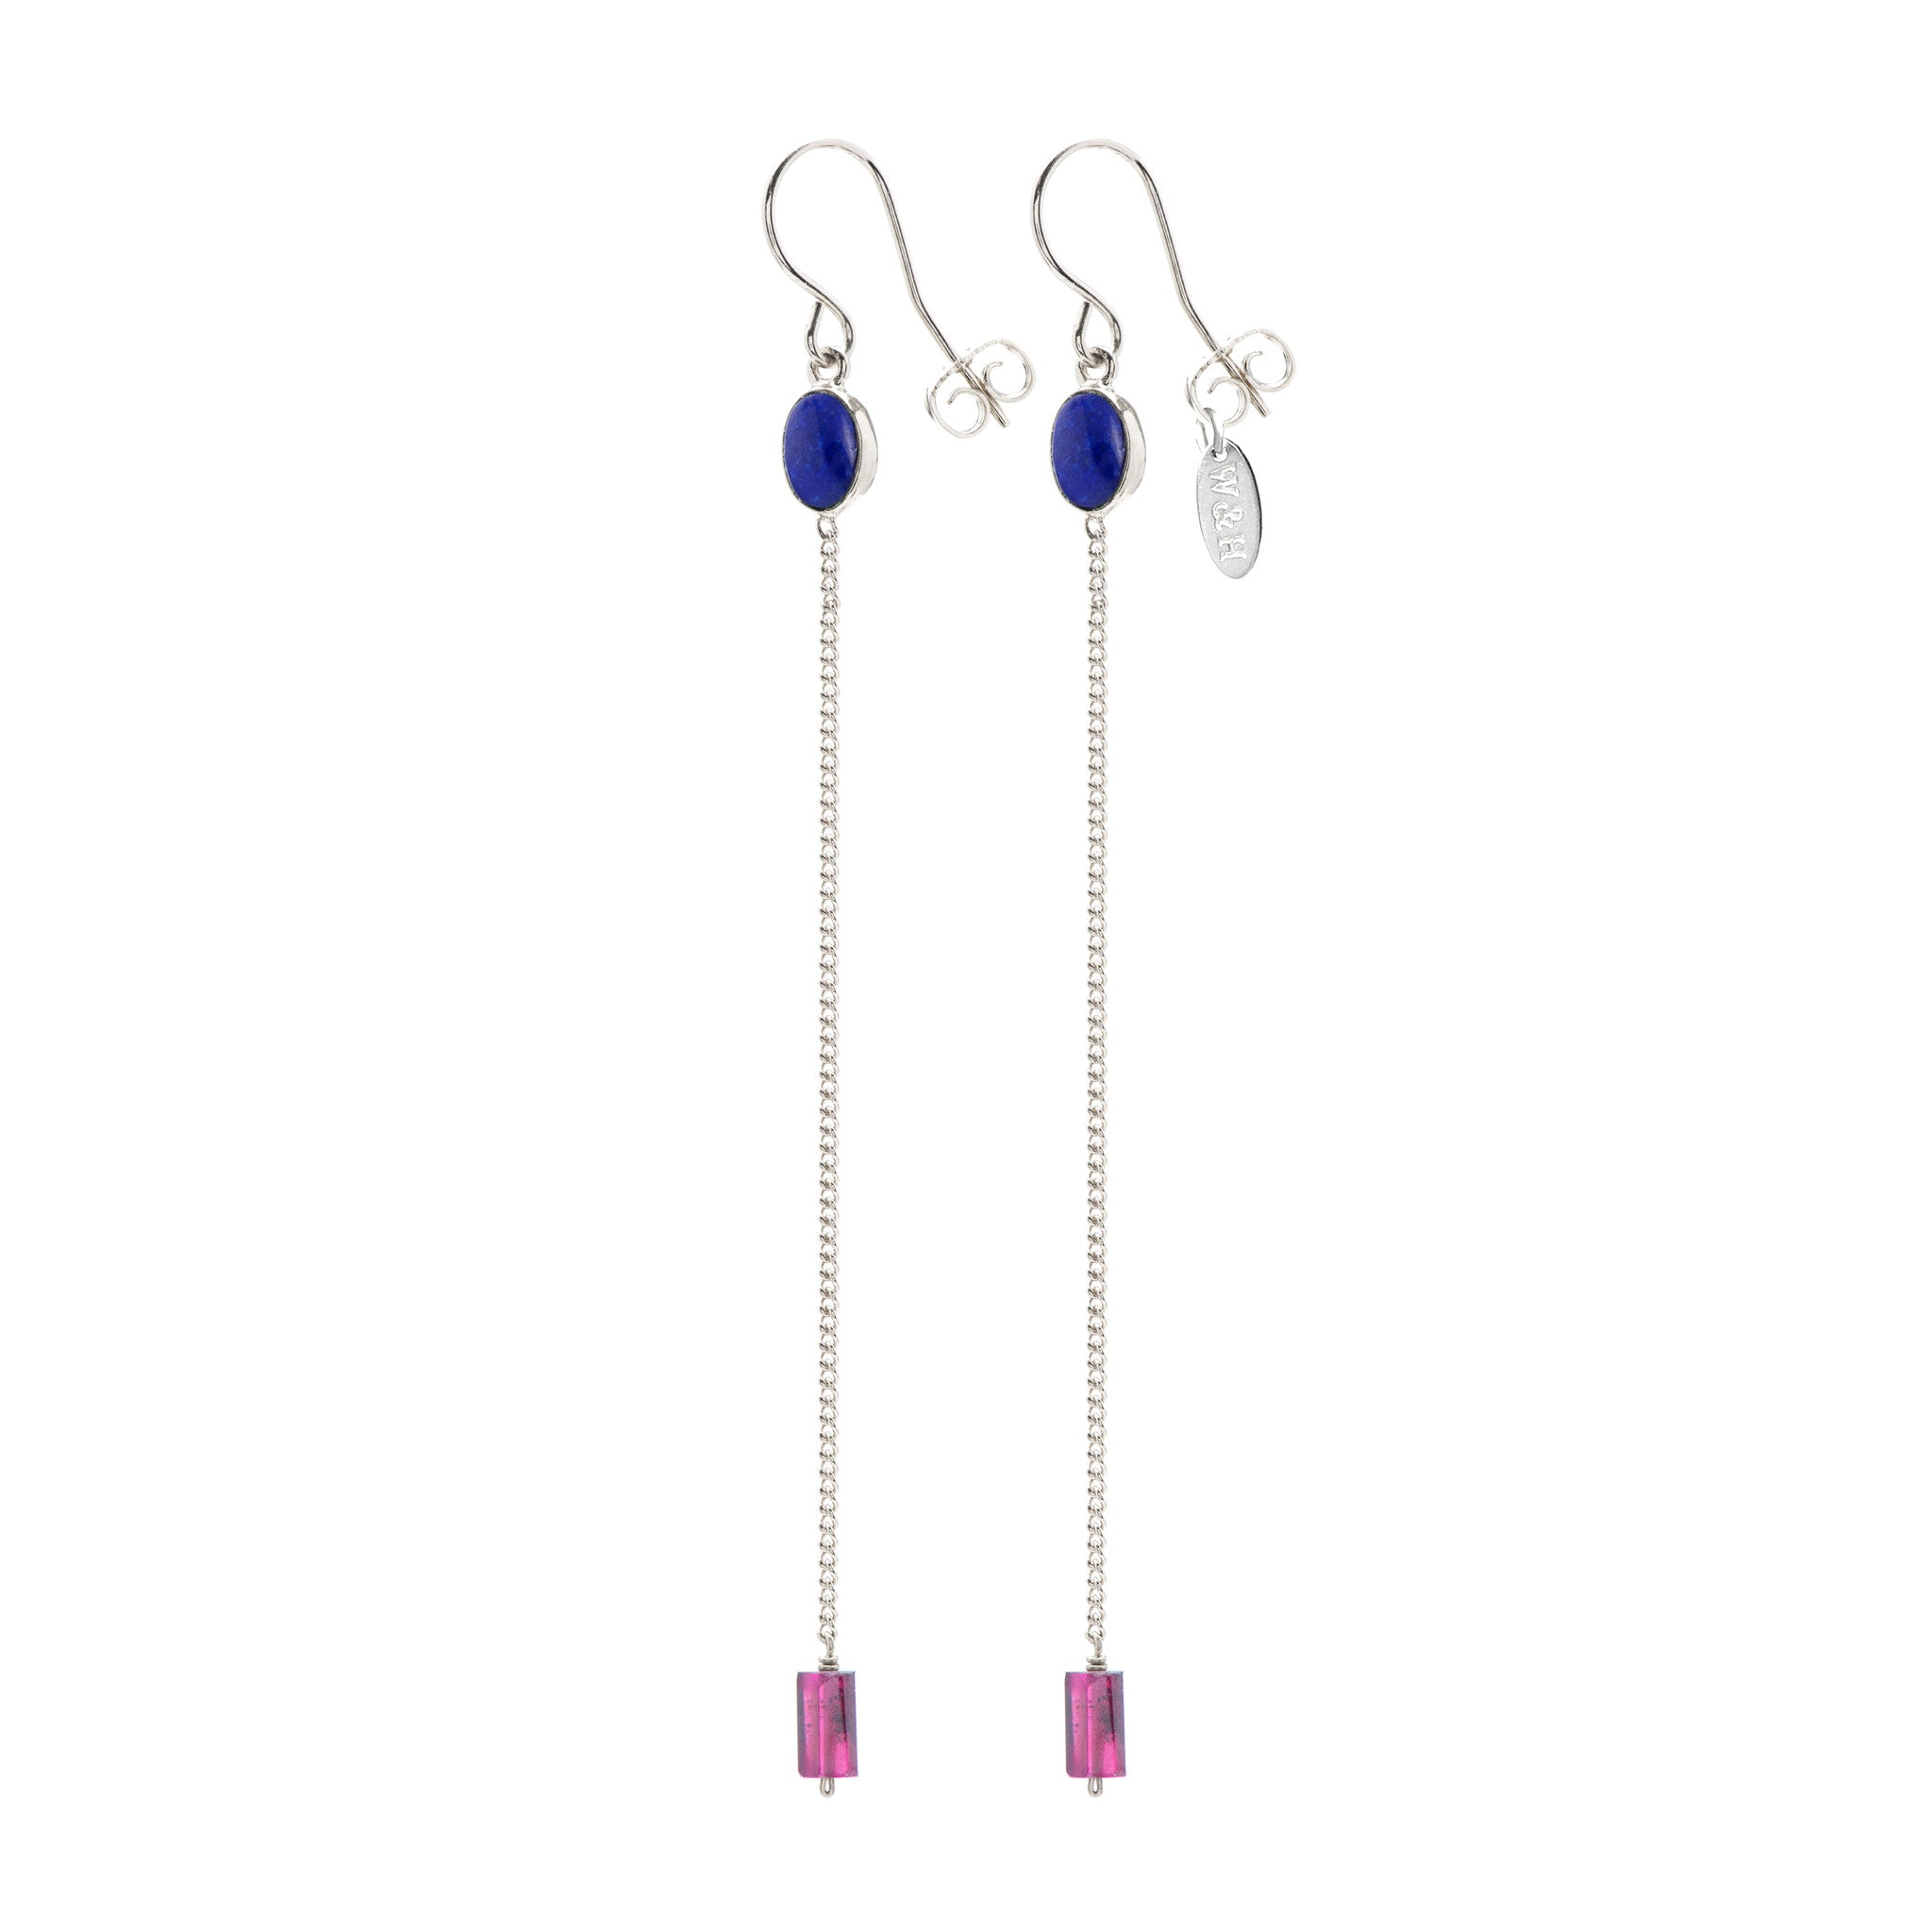 Hook Earrings with Lapis Lazuli and Garnet